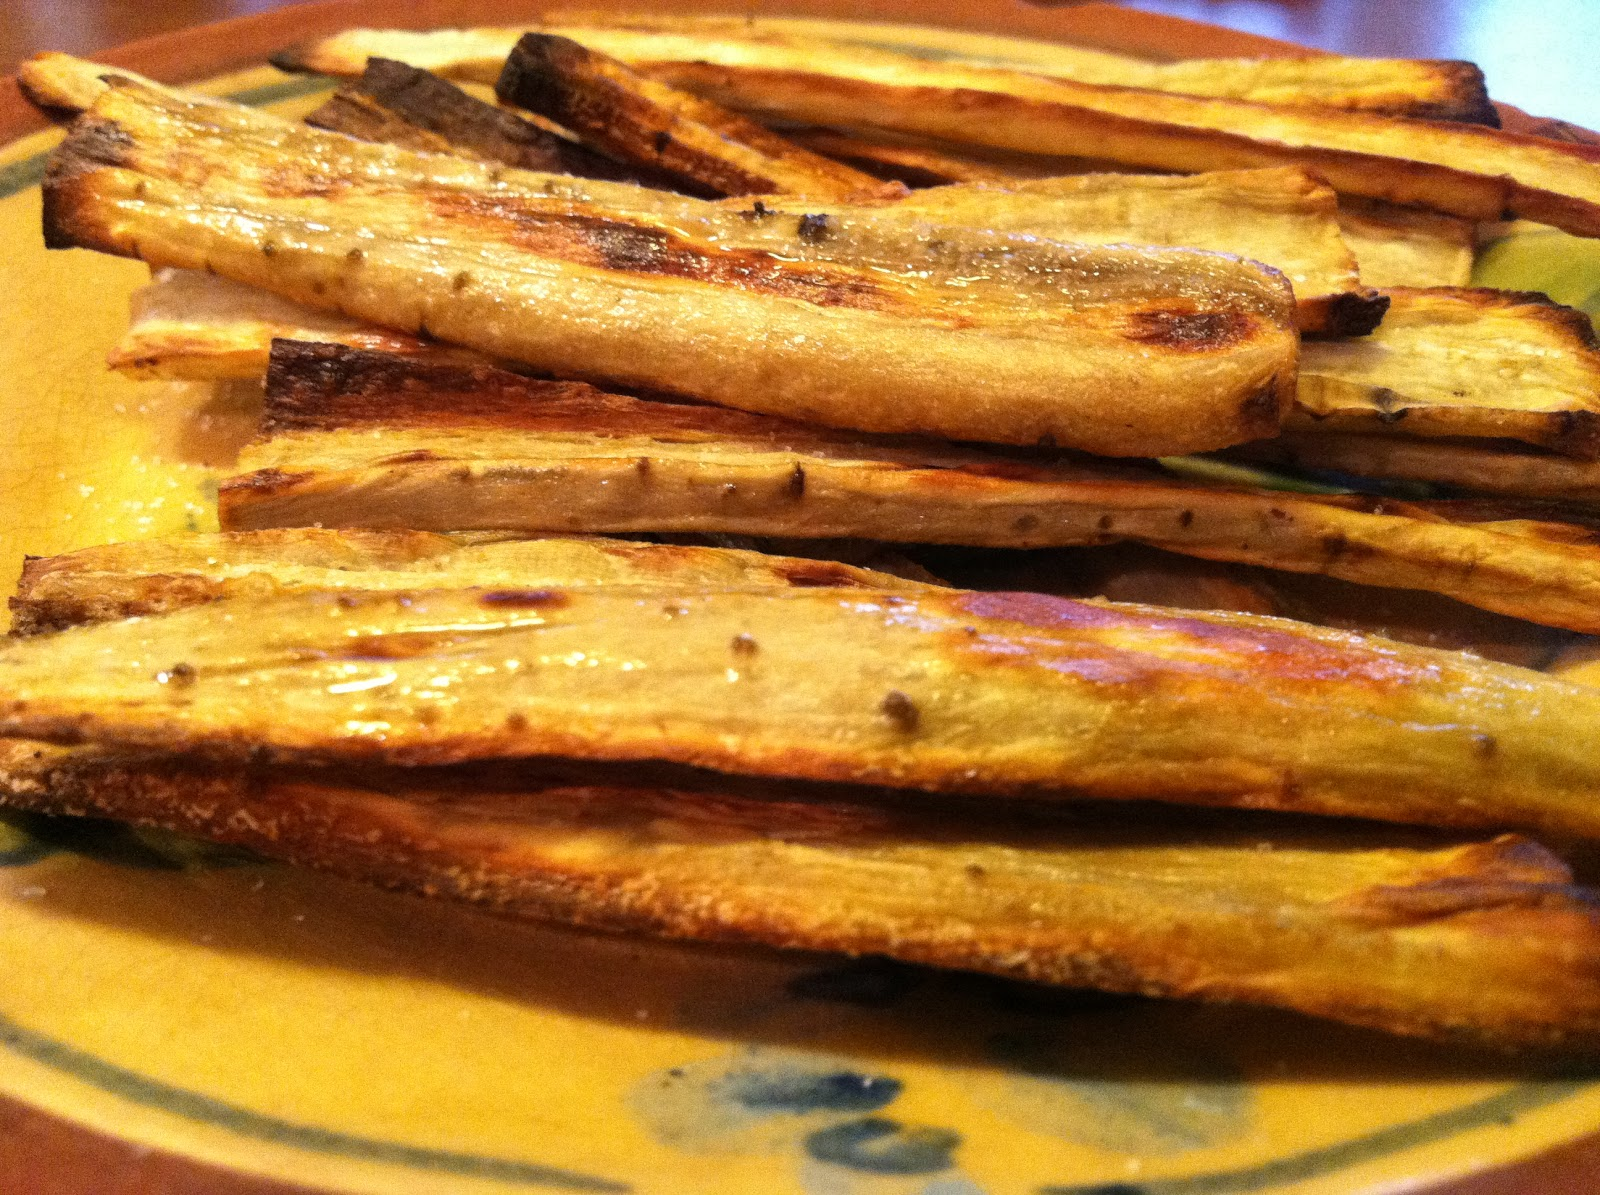 Slowcooked RX: Oven Roasted Burdock Chips